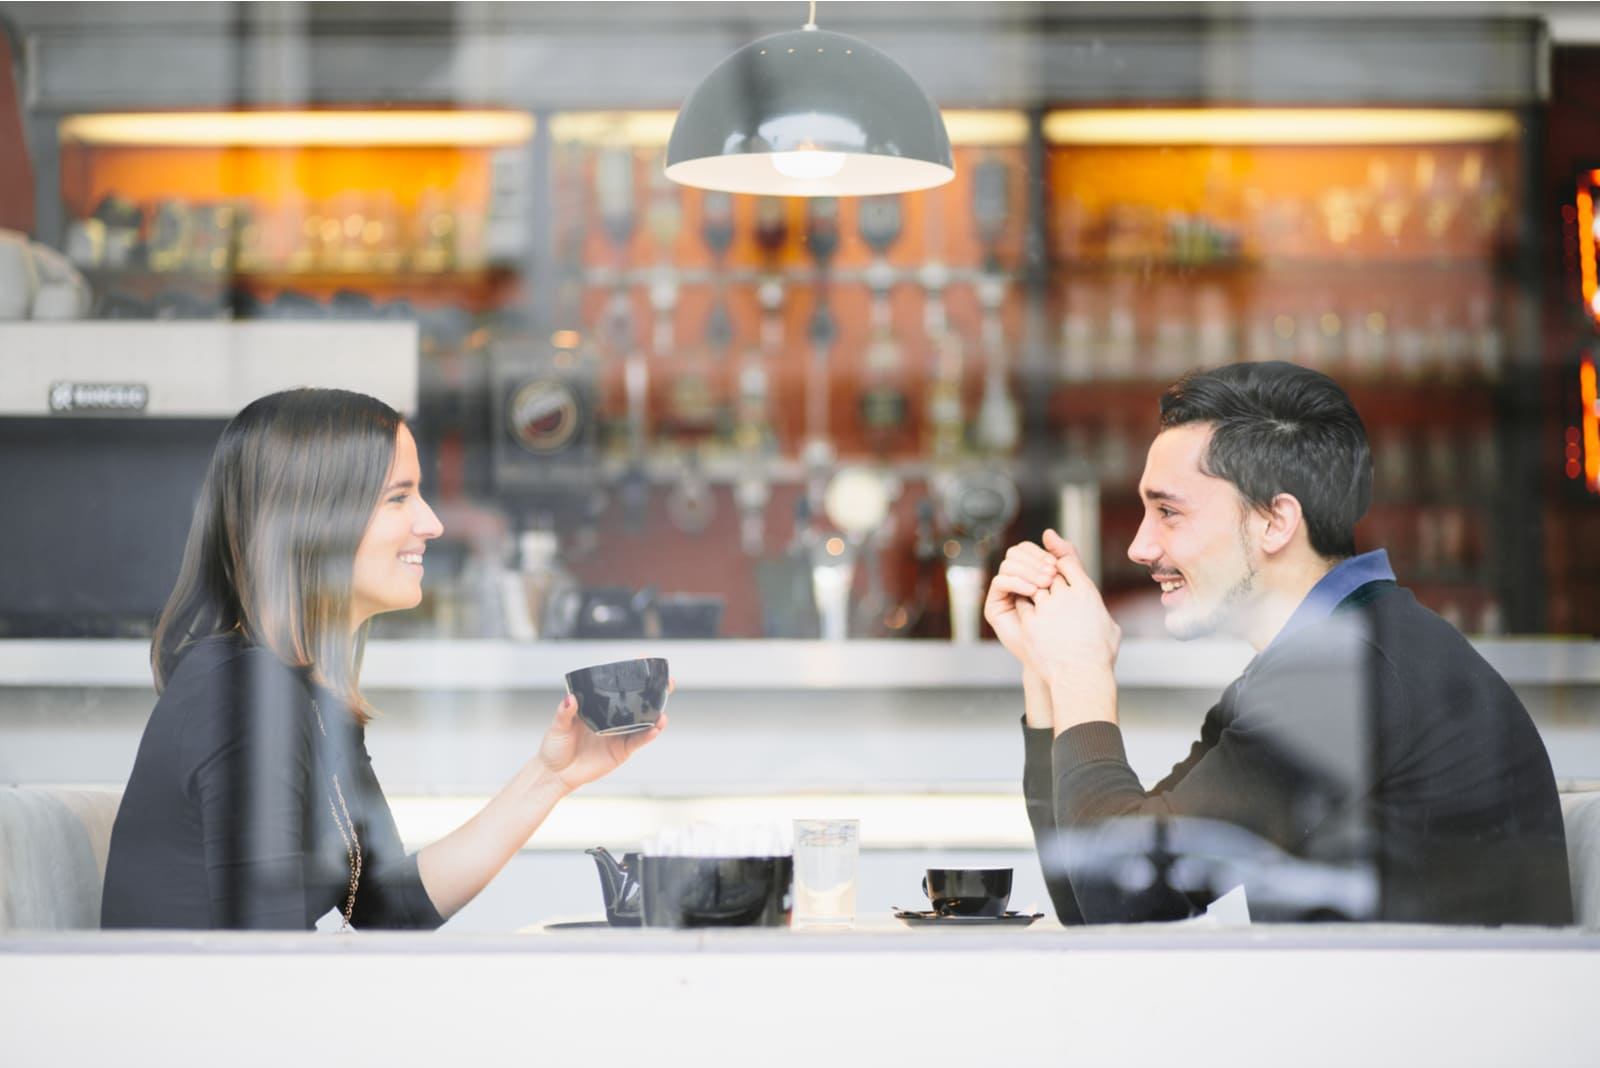 a man and a woman sit and drink coffee